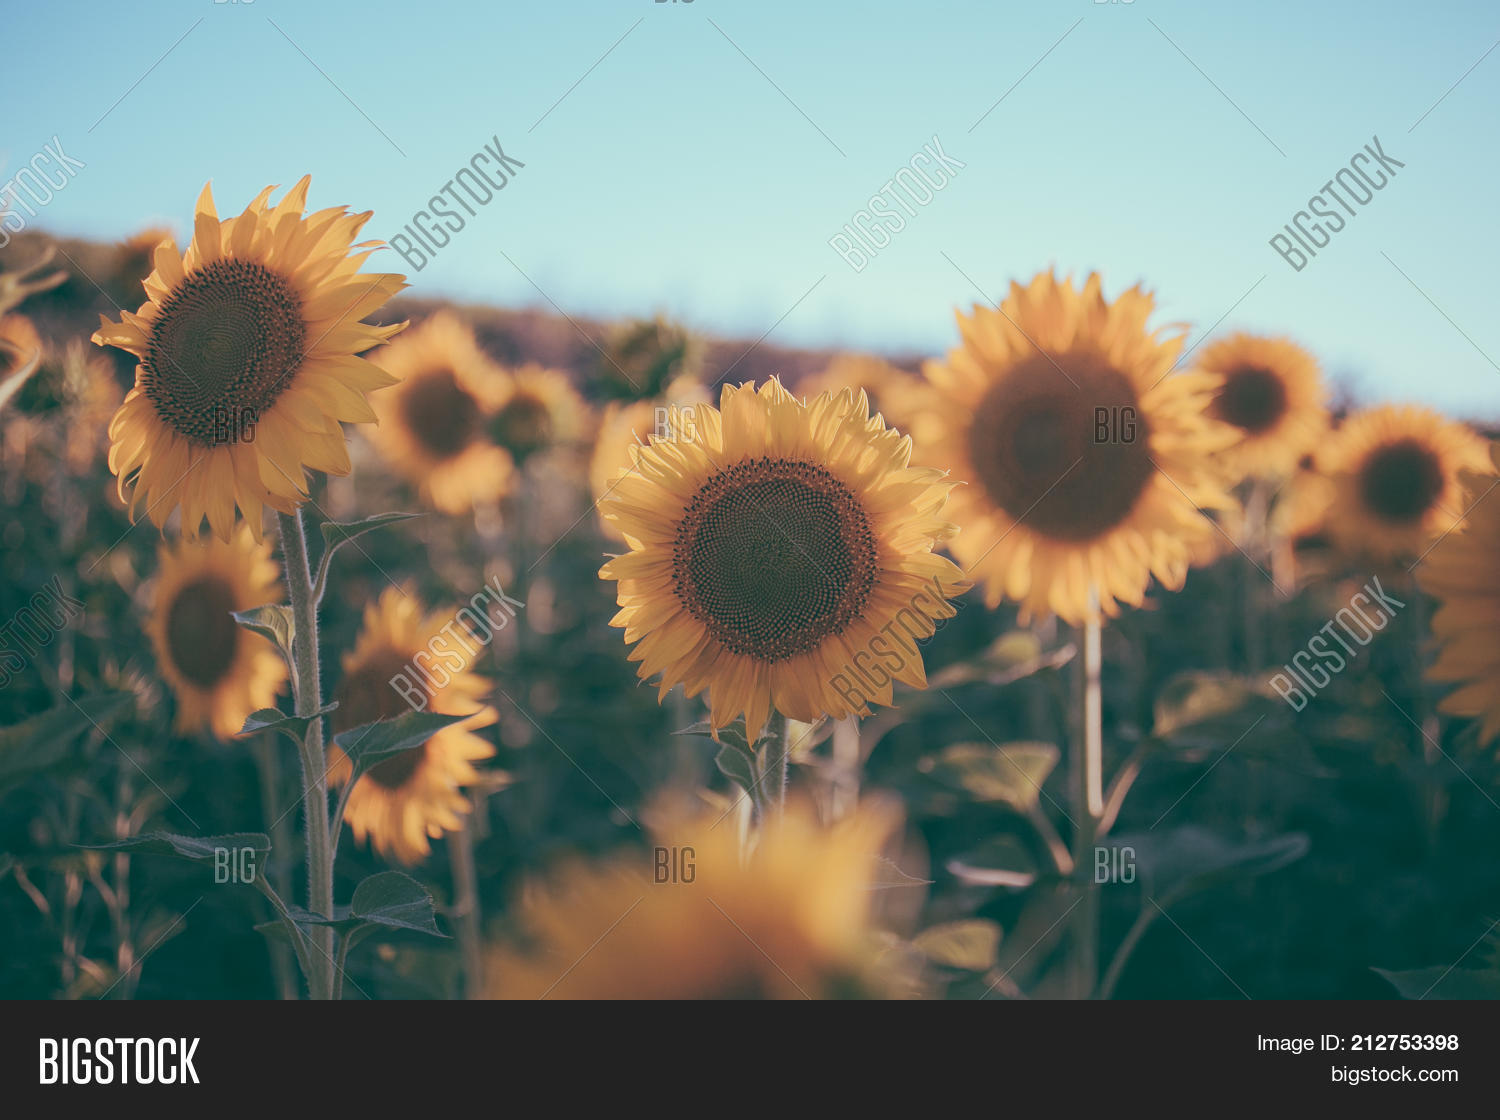 Sunflowers Texture And Background For Designers Field In Vintage Style Macro View